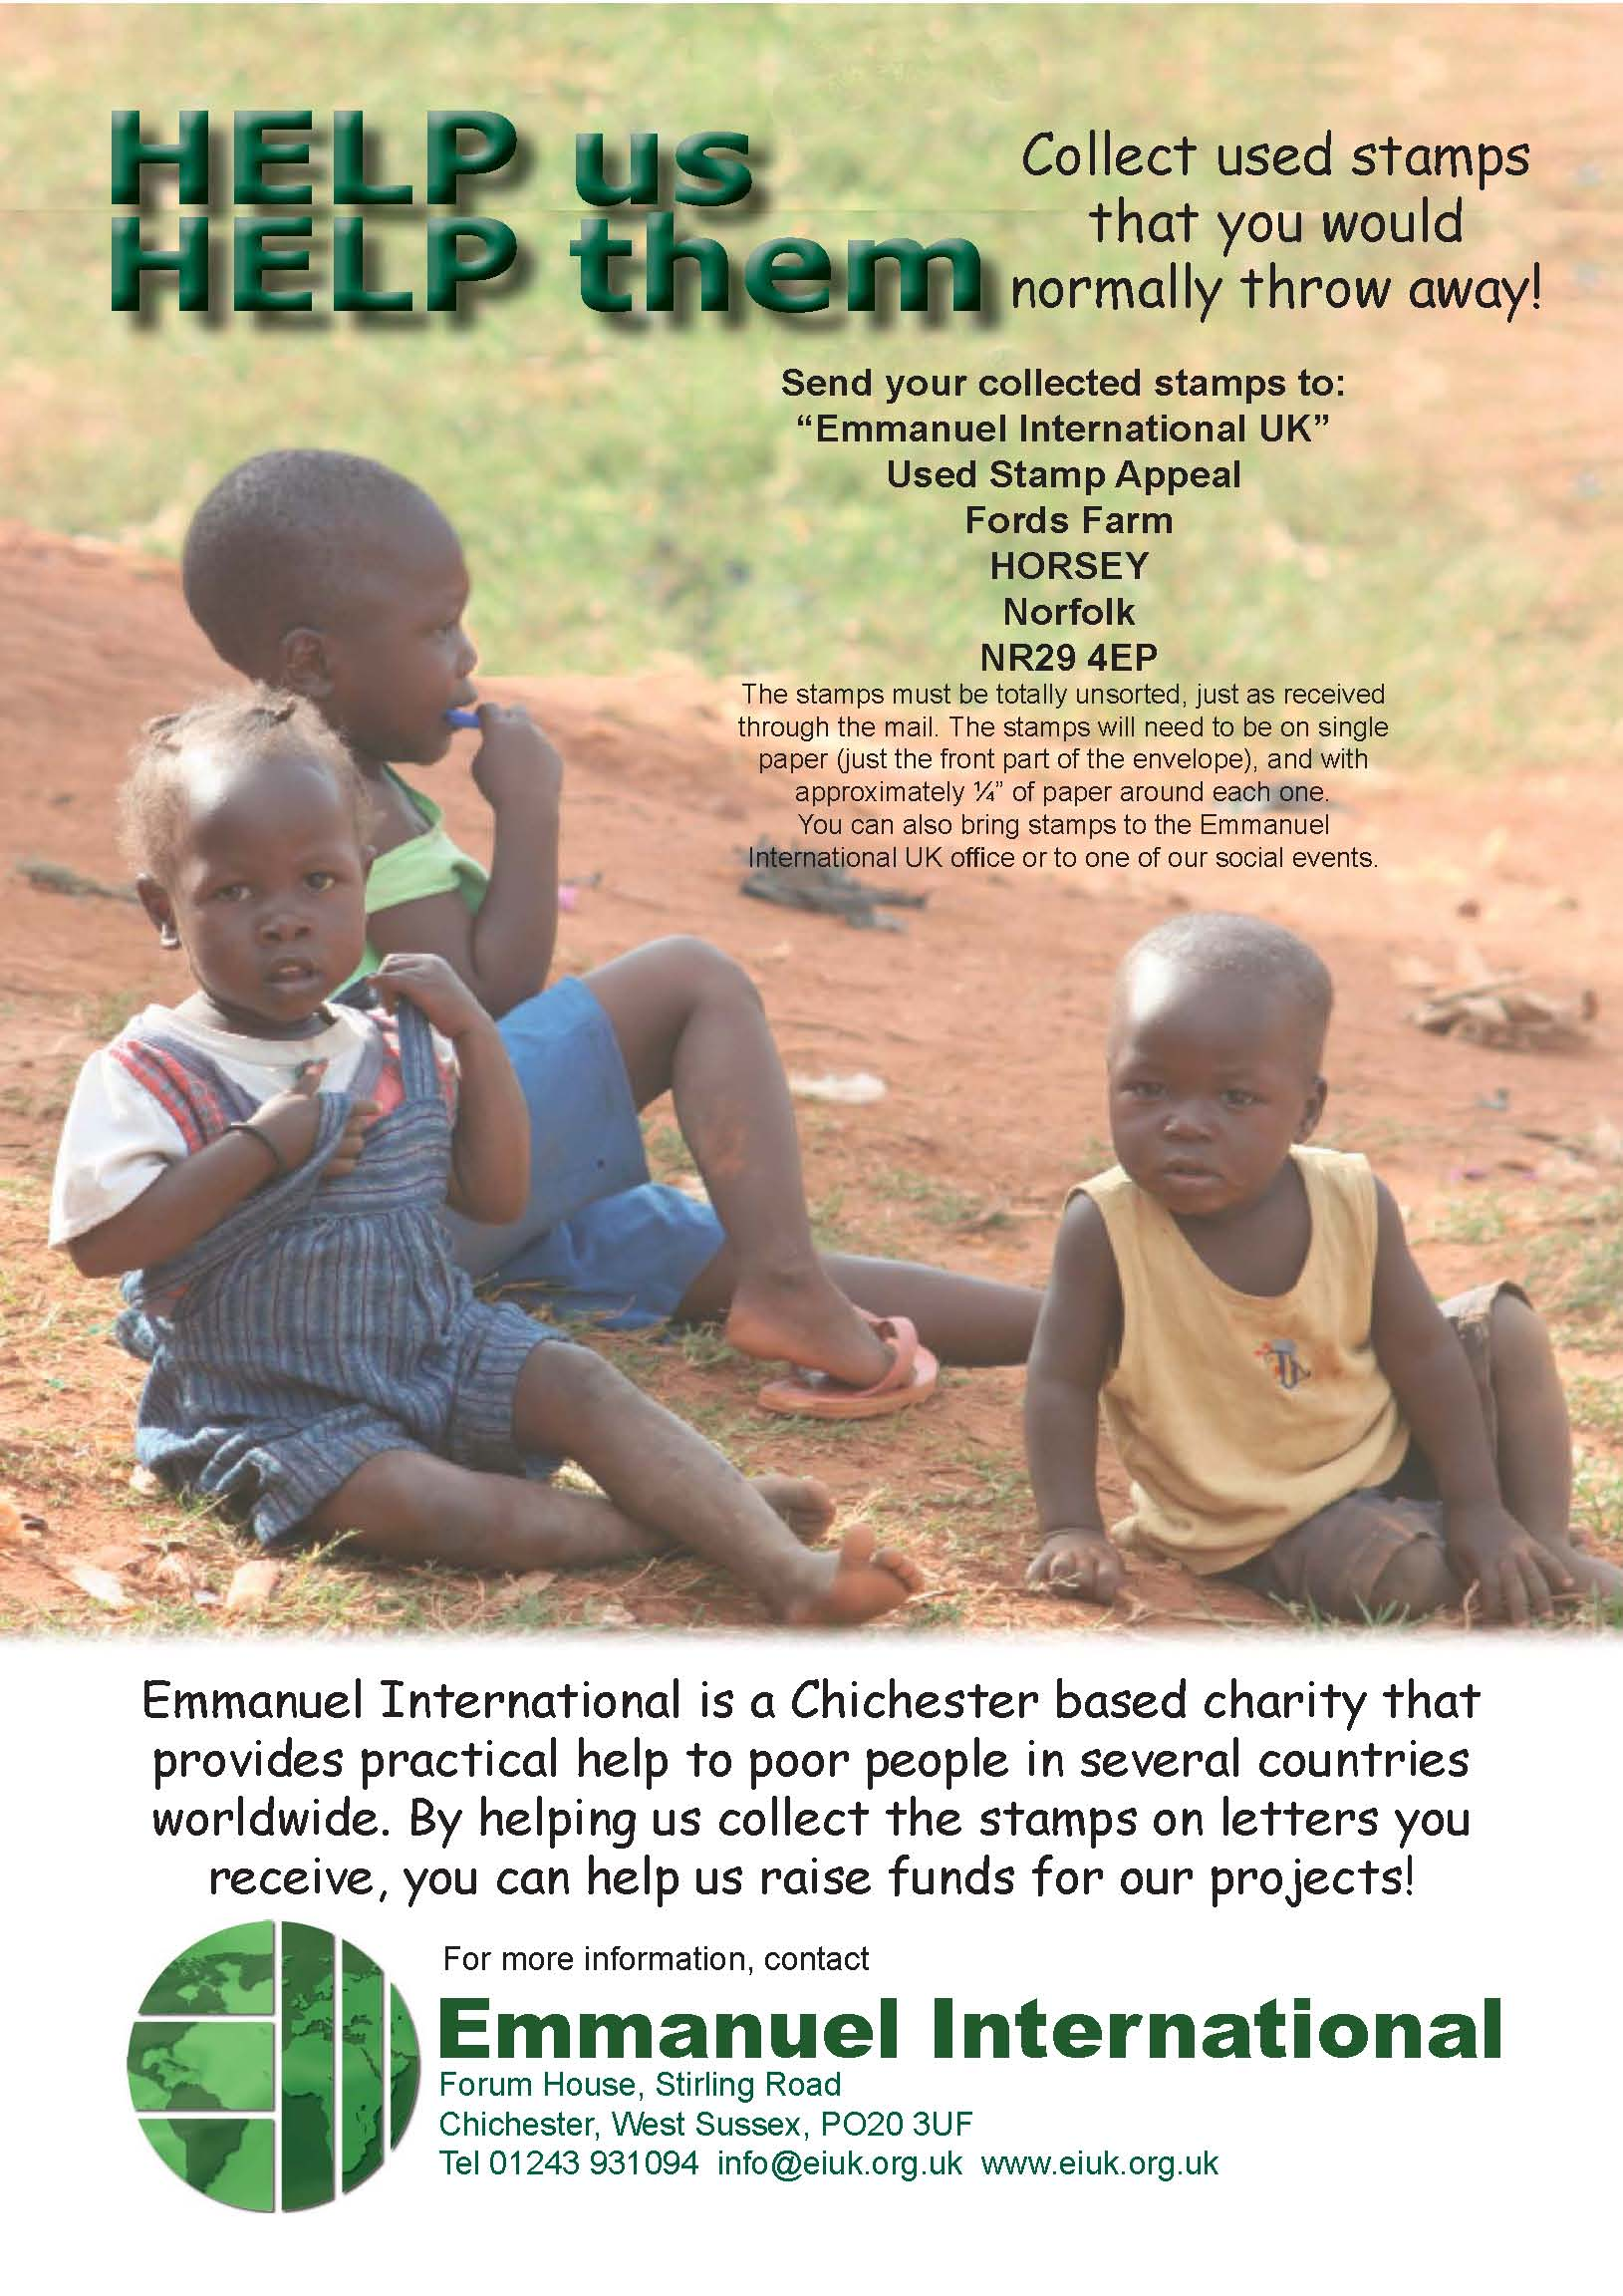 Help us raise funds easily!